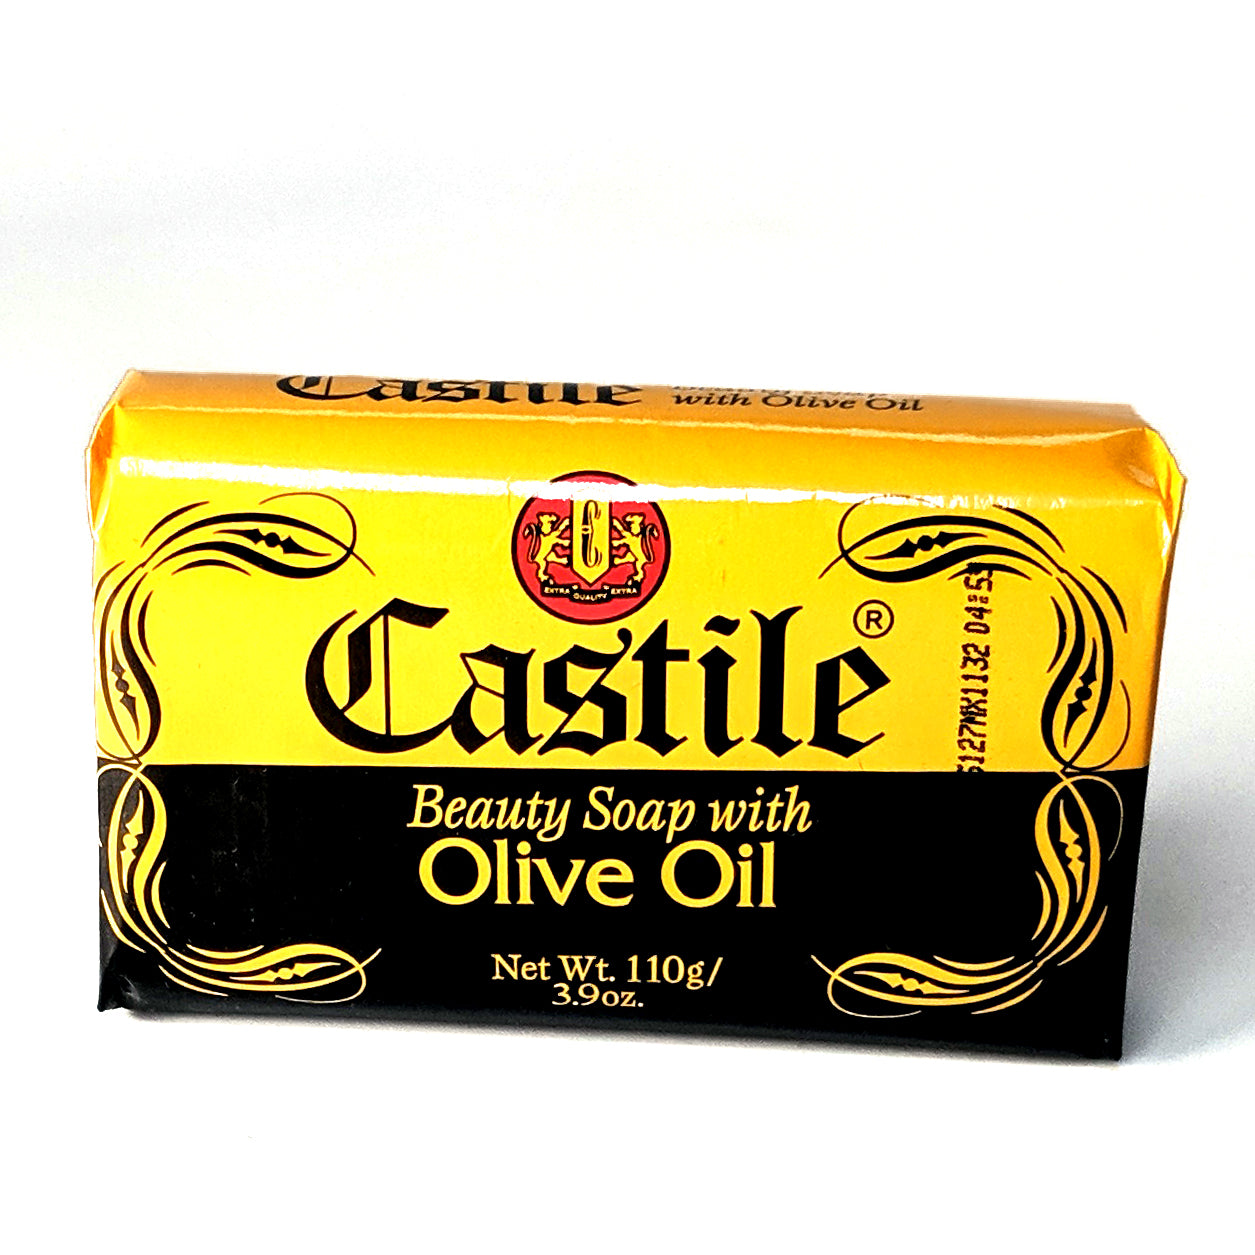 Castile Beauty Soap with Olive Oil